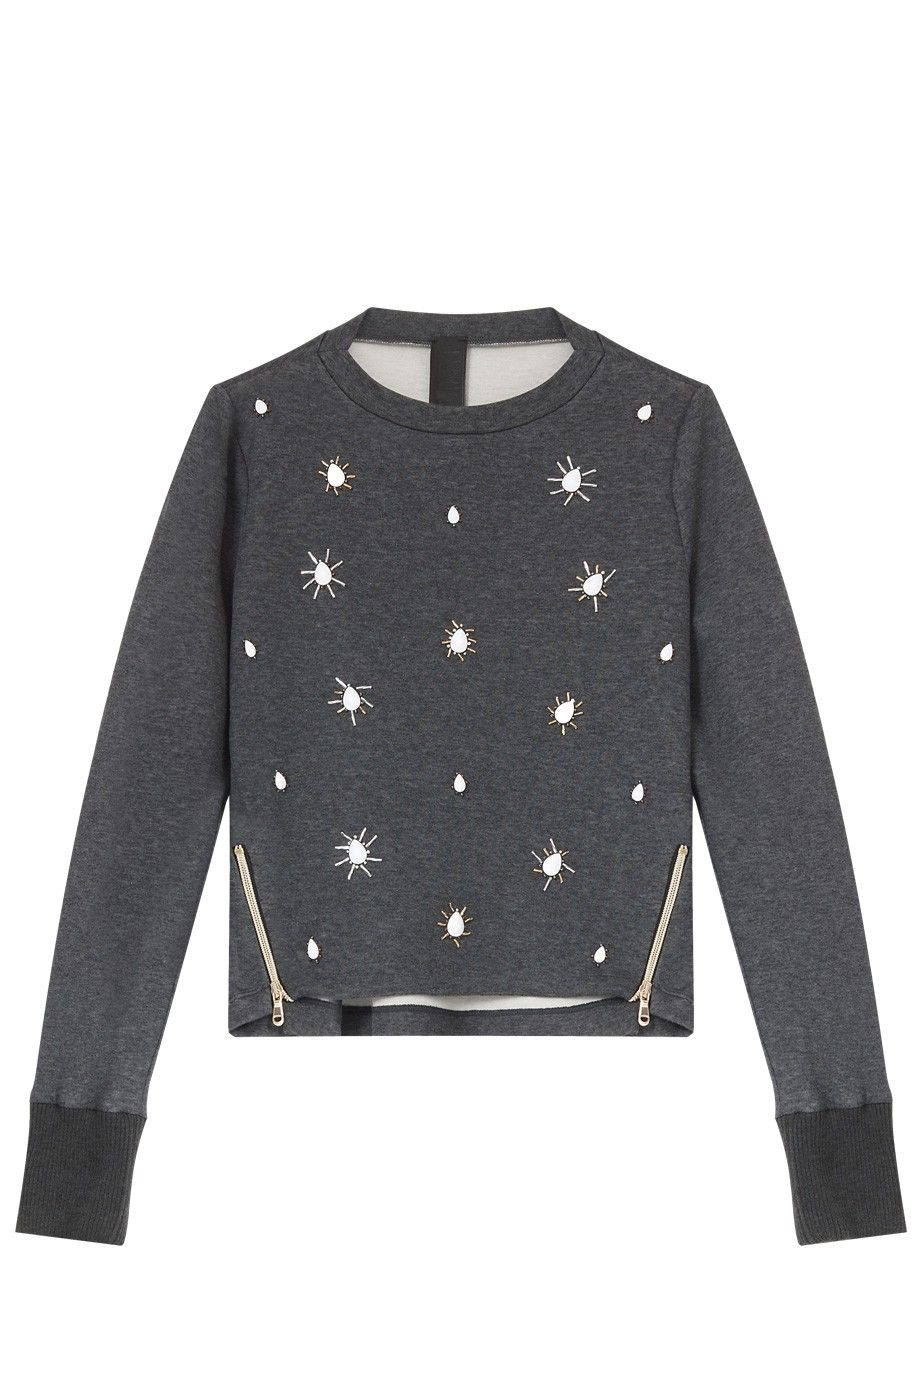 Jewel Front Sweater By TWISTY PARALLEL UNIVERSE @ http://www.boutique1.com/